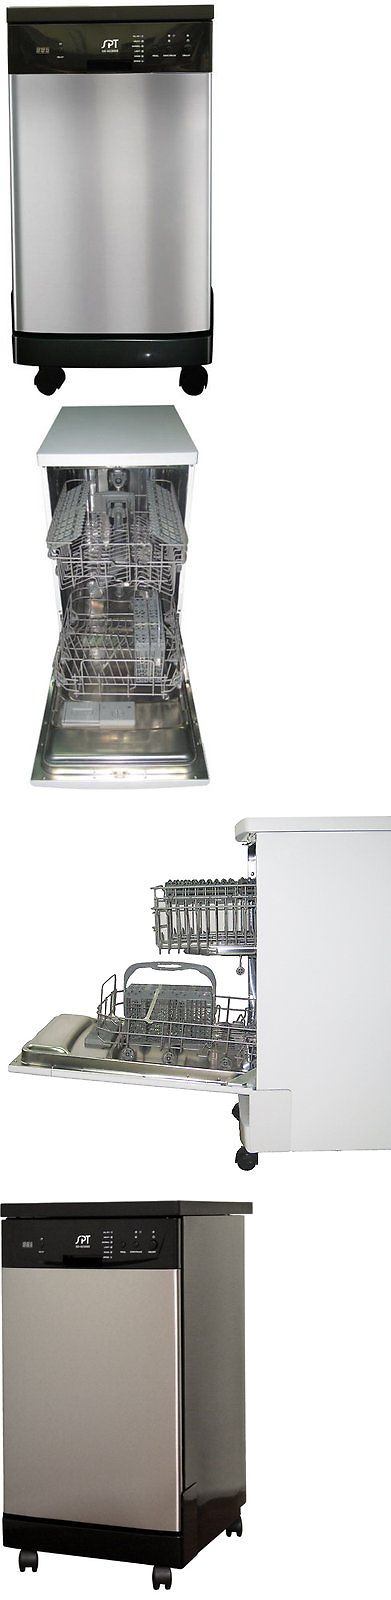 Dishwashers 116023: Spt 18 Inch Energy Star Portable Dishwasher Stainless  Steel Sd 9241Ss New